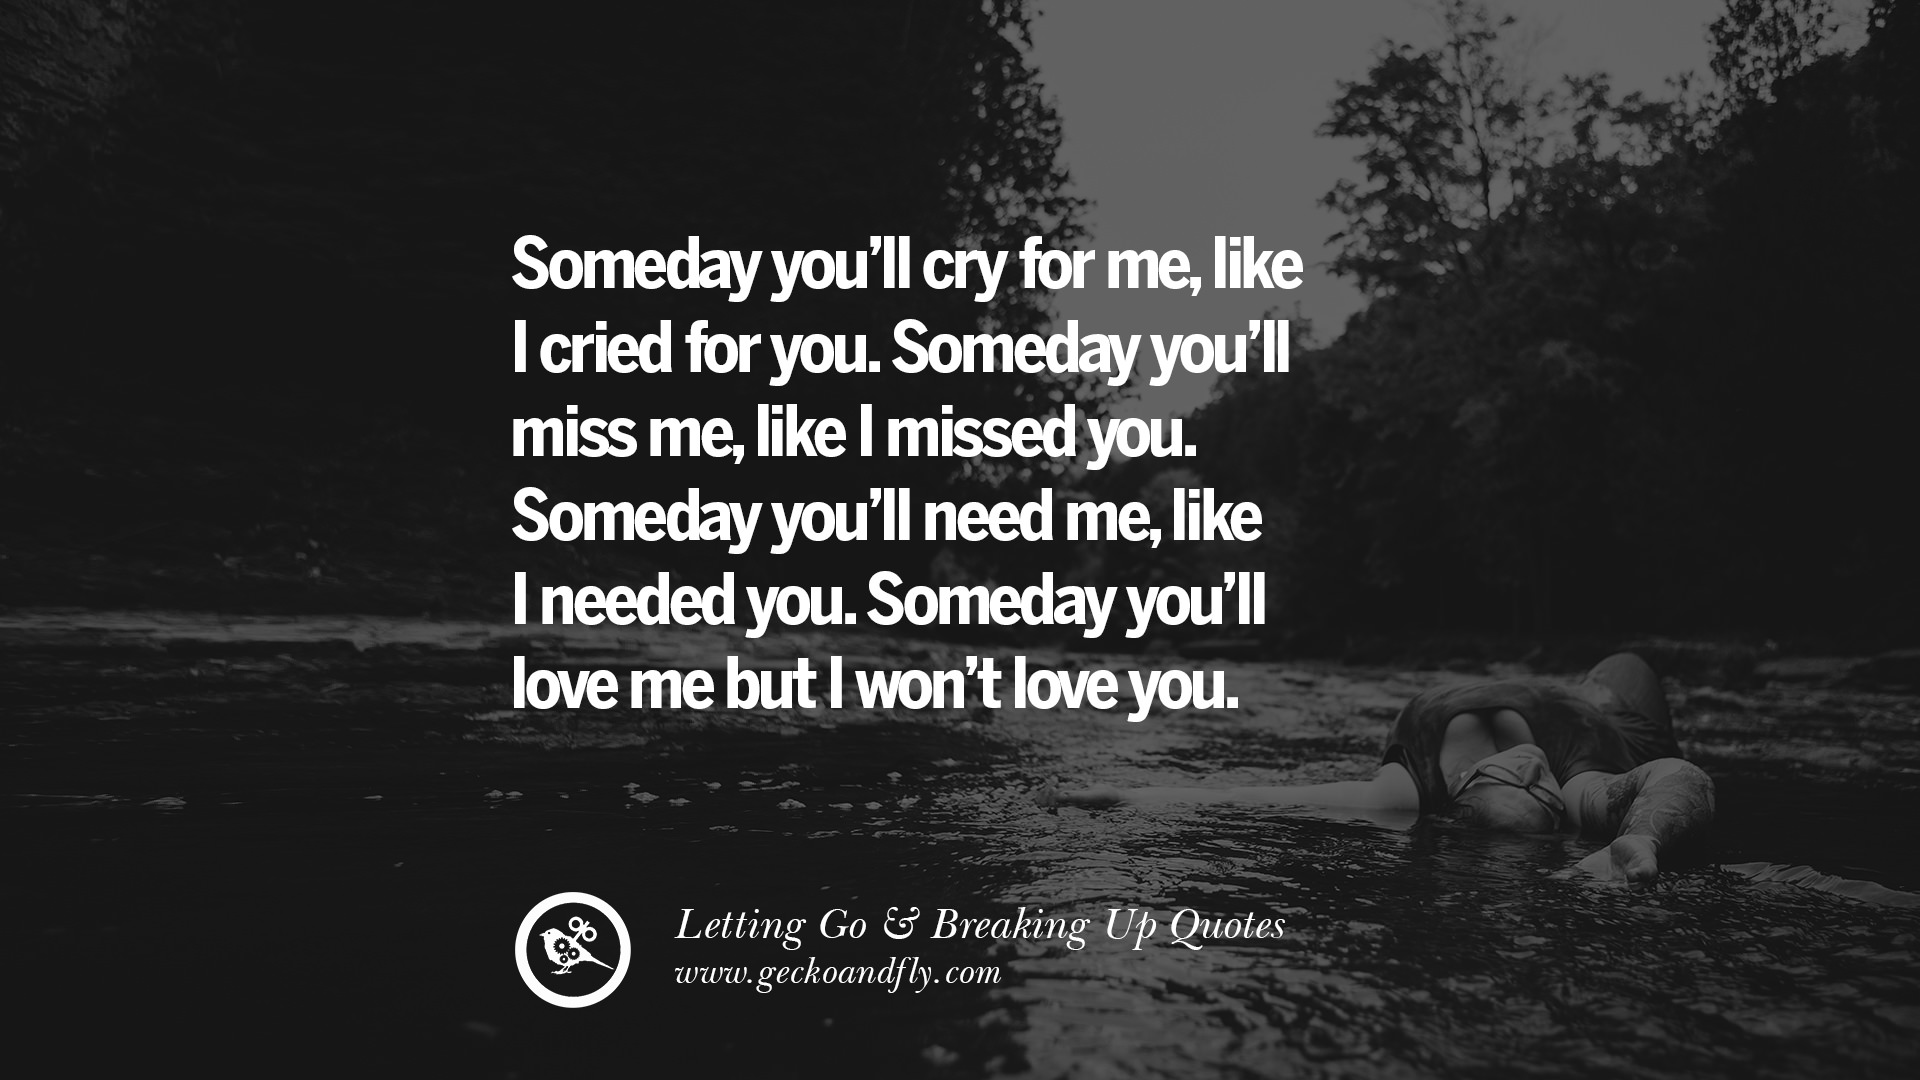 ... you. Someday you'll love me but I won't love you. Quotes About | 1920 x 1080 jpeg 270kB